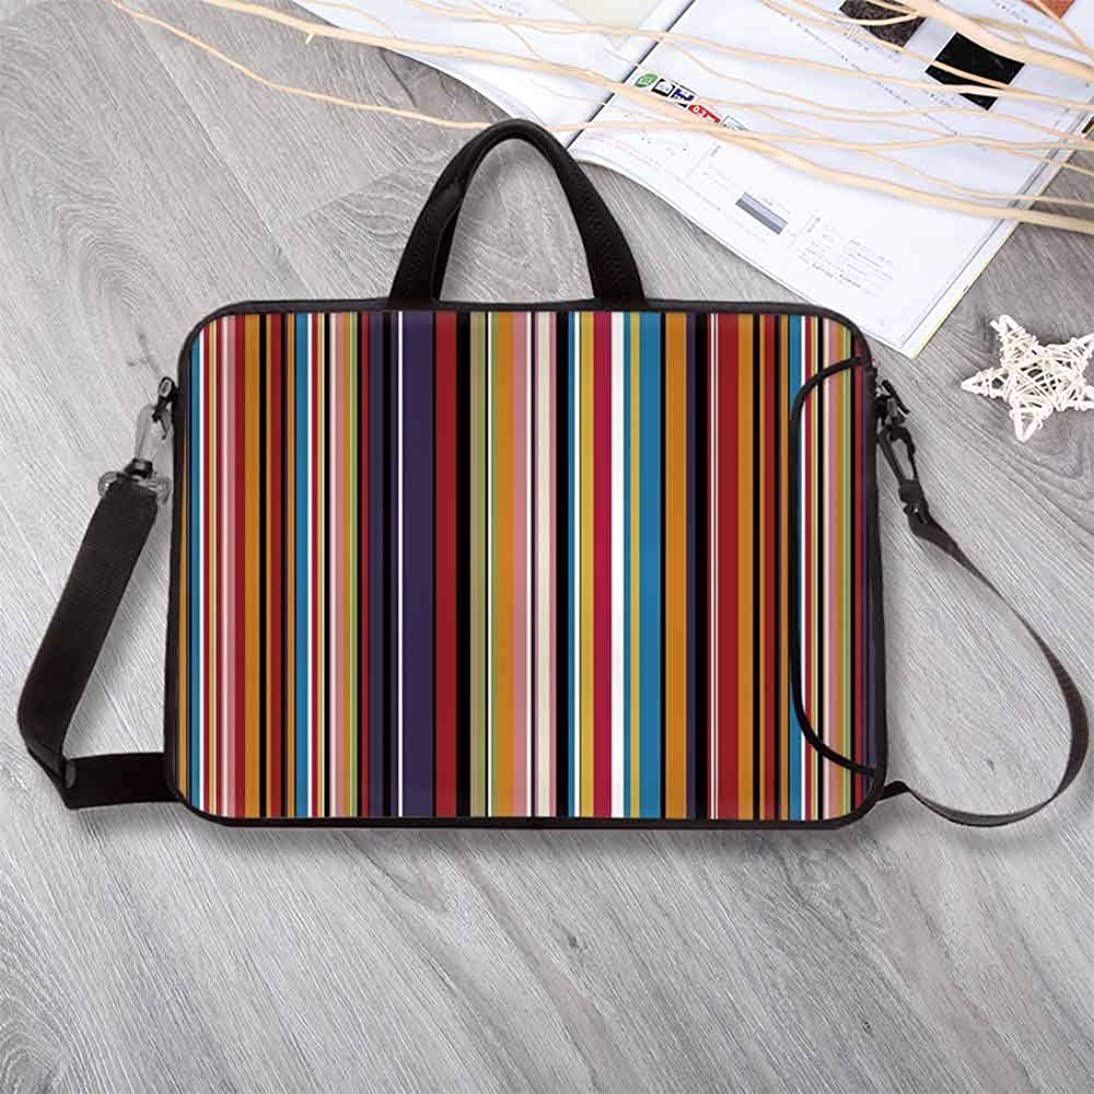 """Abstract Waterproof Neoprene Laptop Bag,Vibrant Colored Stripes Vertical Pattern Funky Modern Artistic Tile Illustration Laptop Bag for Business Casual or School,17.3""""L x 13""""W x 0.8""""H ogtm378362878386"""